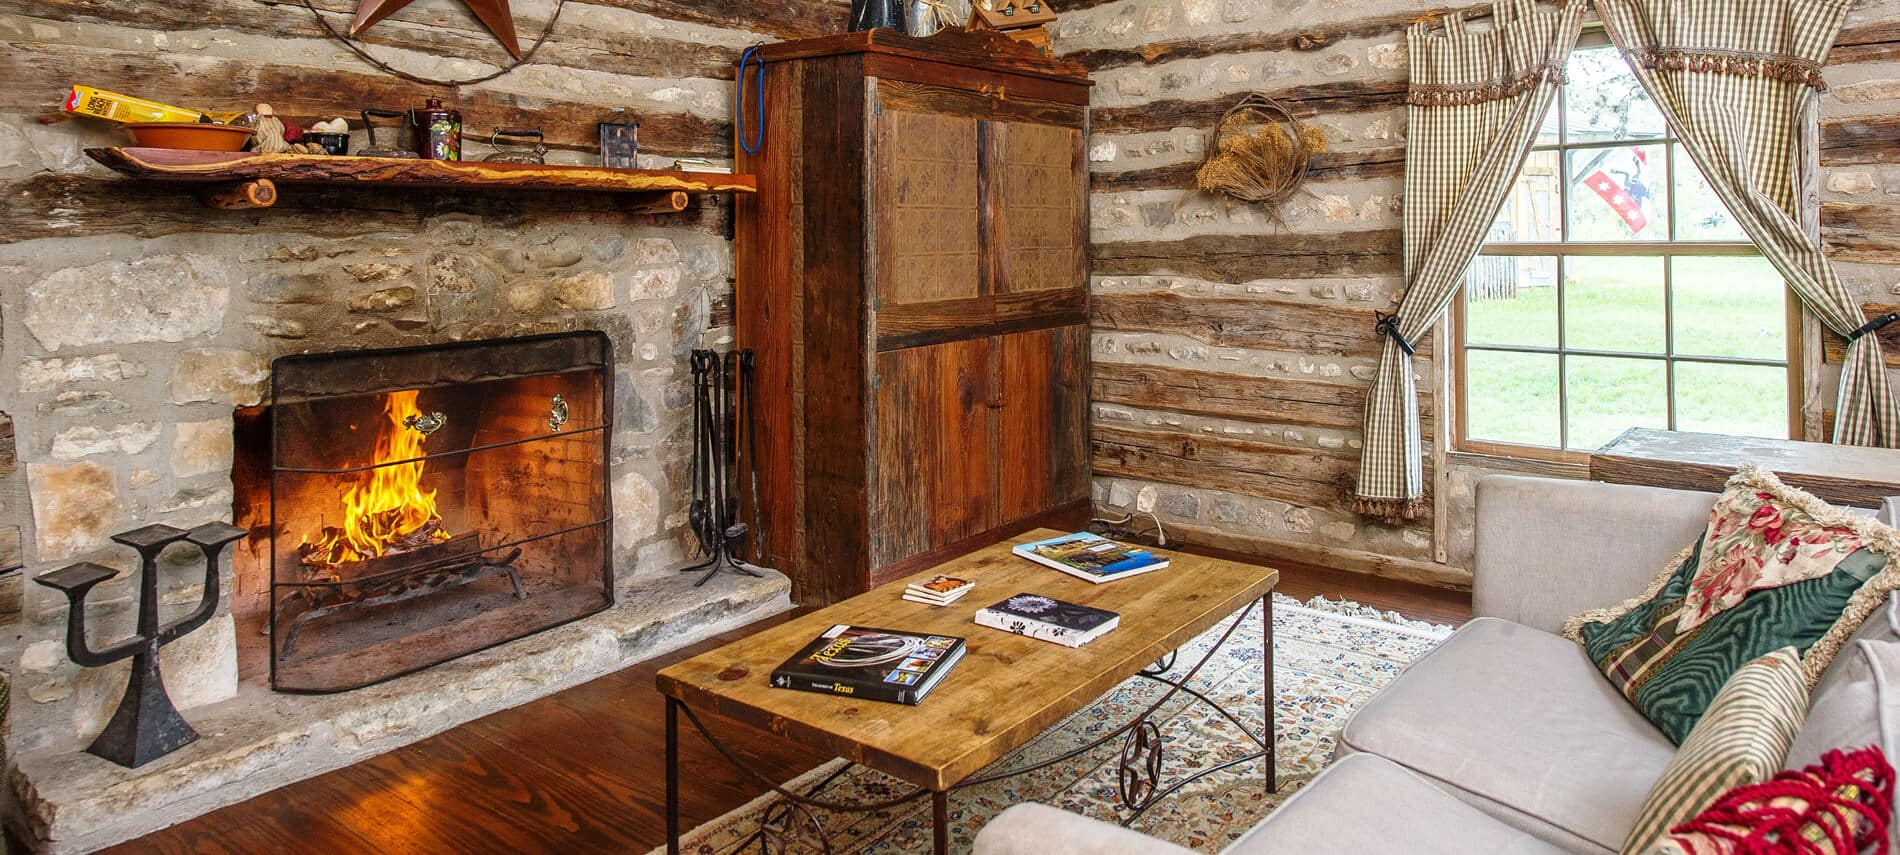 getaways in the romantic hill country of texas